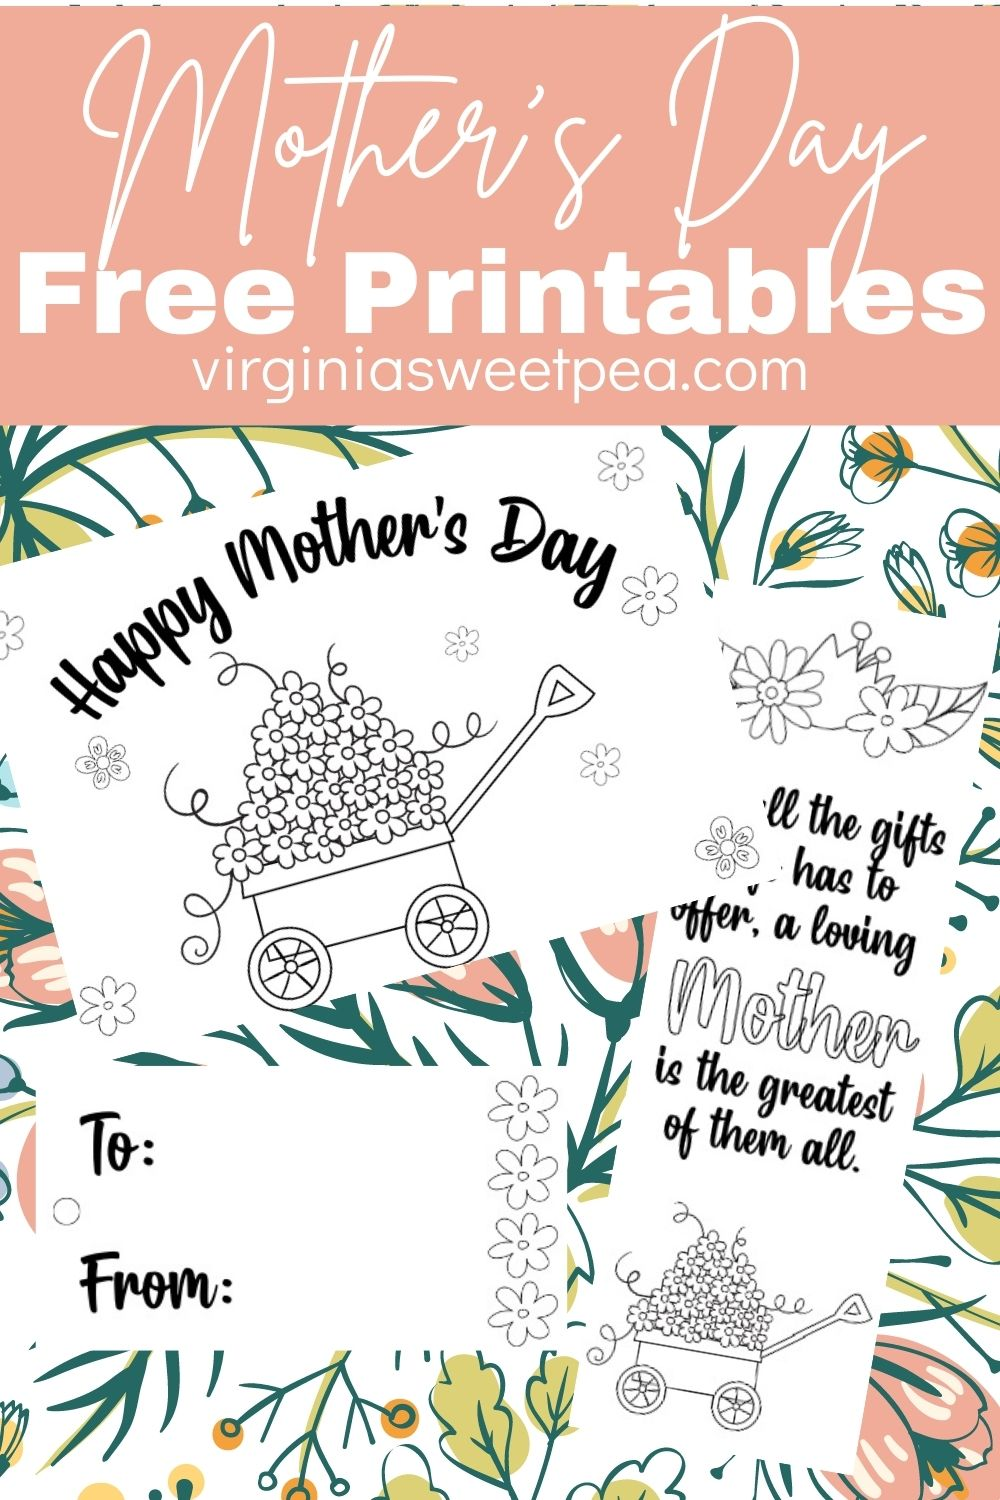 Print and color a free printable Mother's Day card, bookmark, and gift tag.  Kids or adults can use these to create something beautiful and special to give mothers or grandmothers. #mothersday #freeprintable #printablemothersdaycard via @spaula